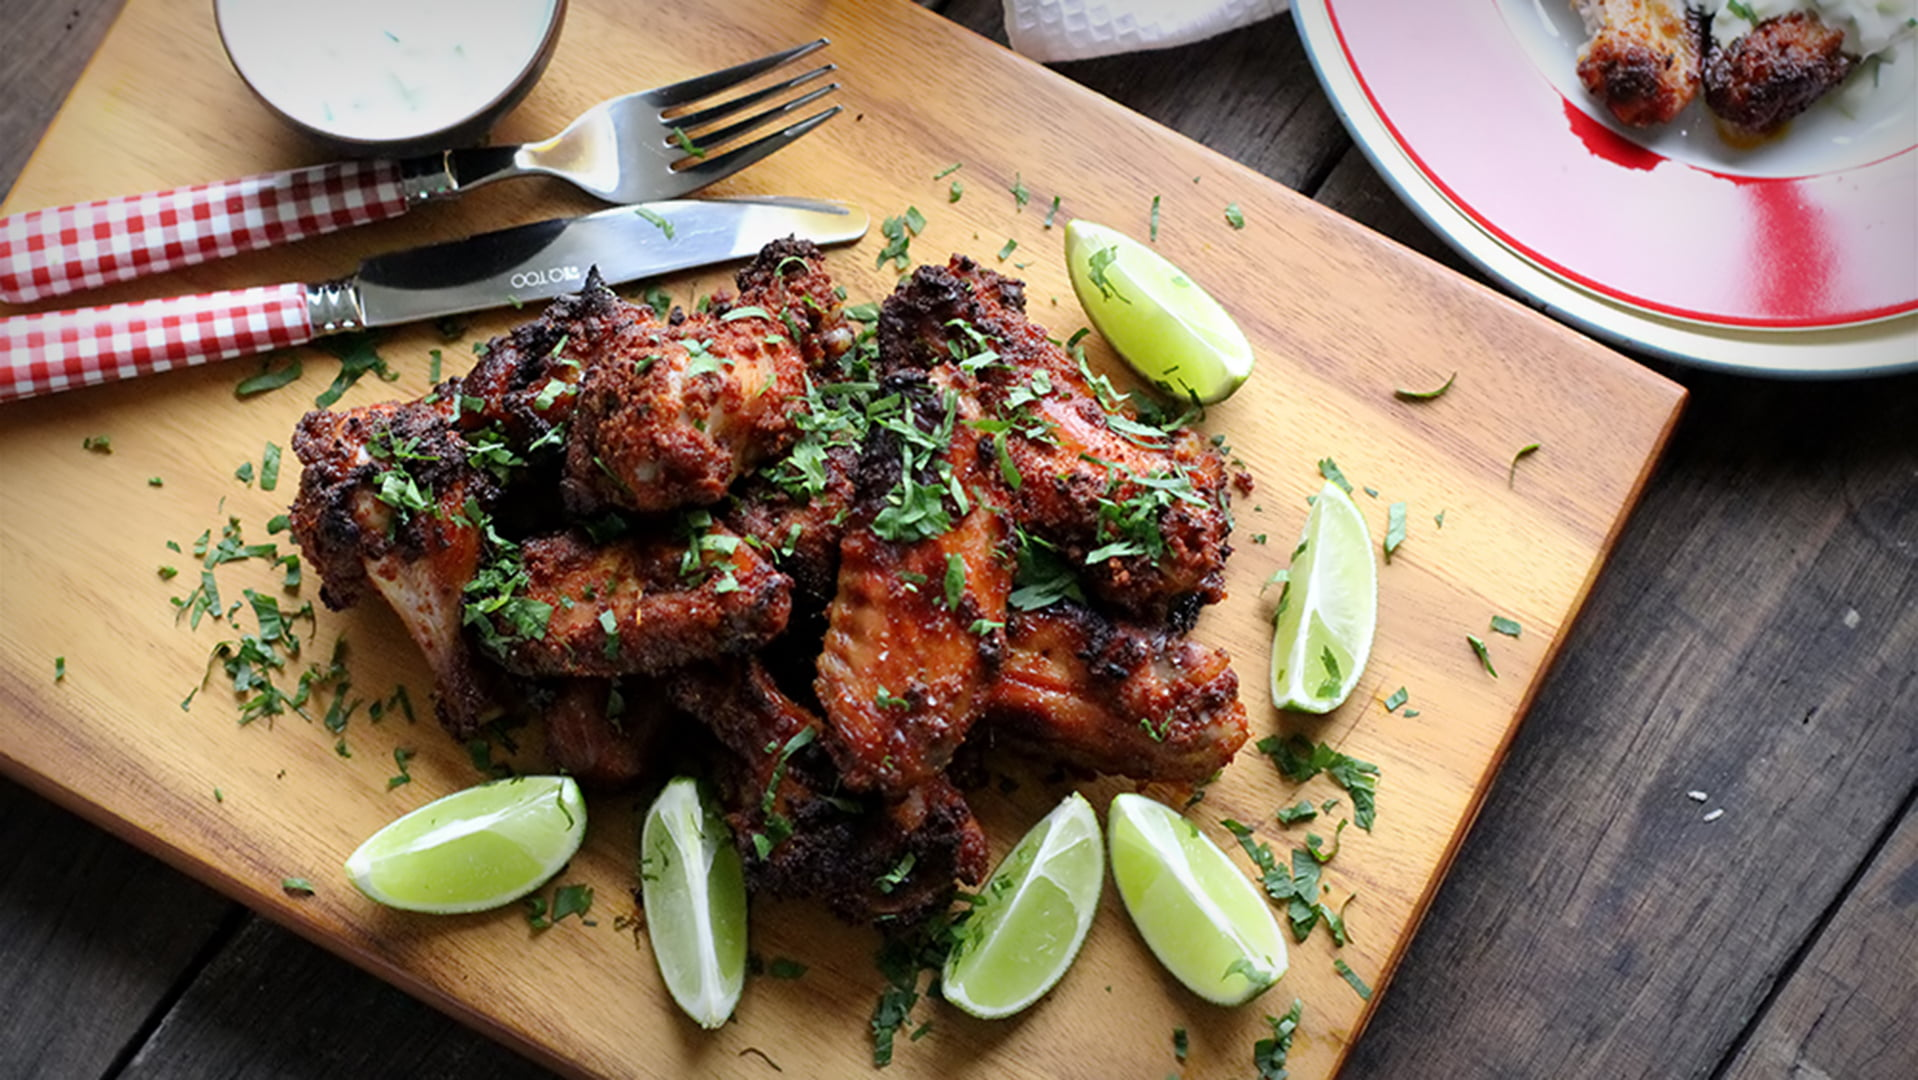 Wings, brined in beer and dusted with a spice mix. Perfect for a hot summer's day